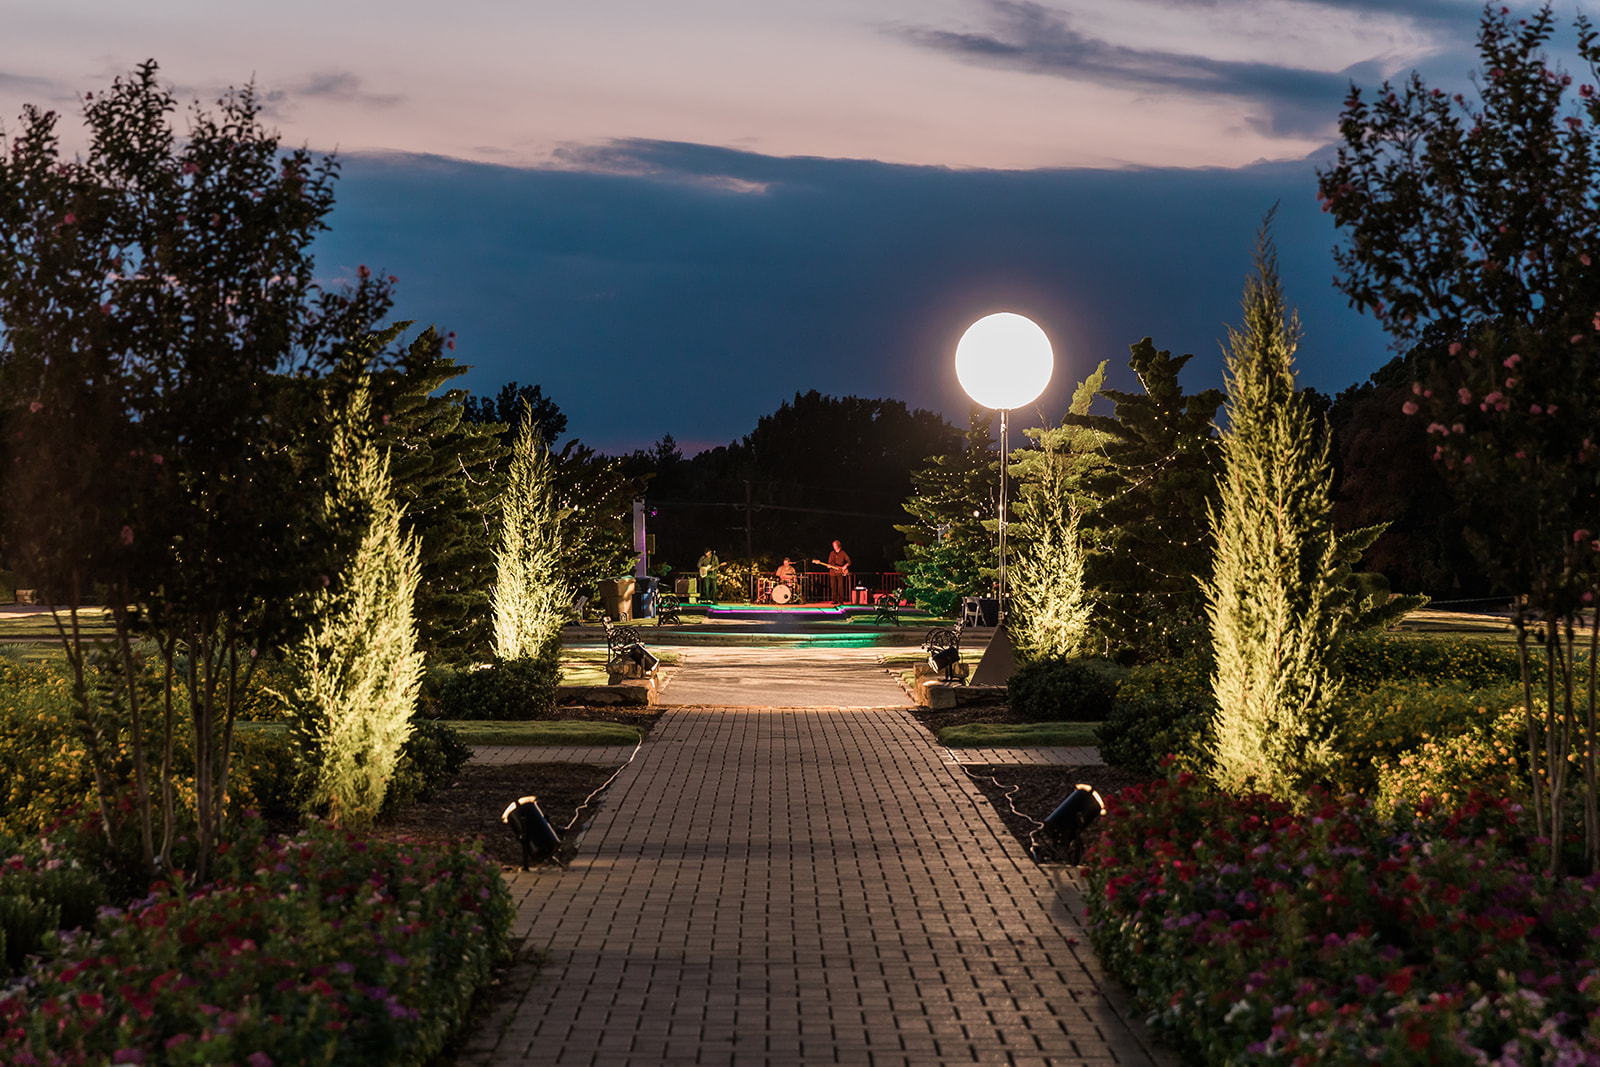 The Tulsa Rose Garden is even more romantic in the evening.